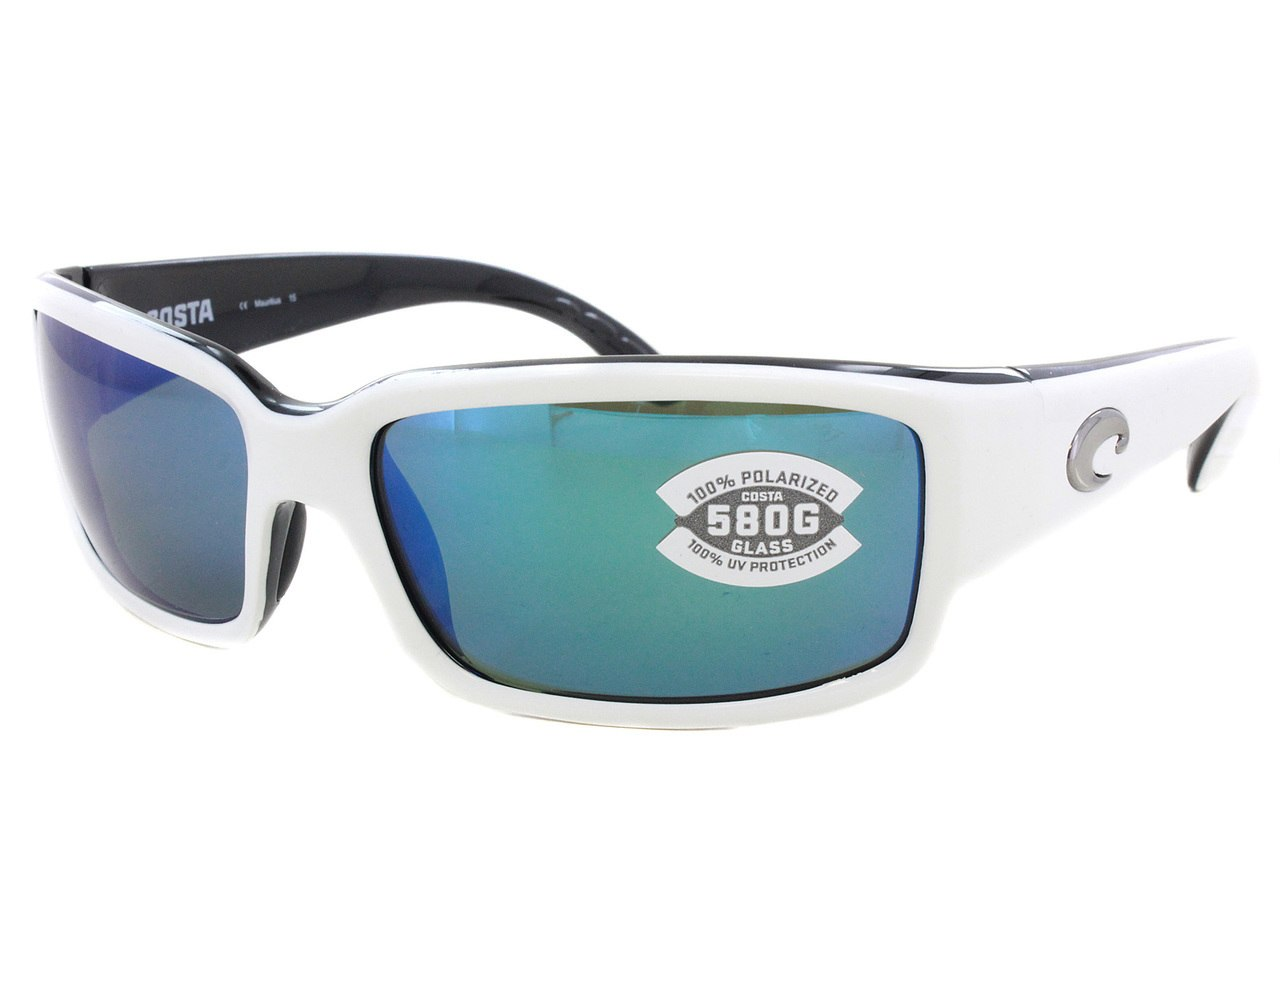 9c6e7afb88de Details about New Costa del Mar Caballito Blue Mirror CL30-OBMGLP580  Sunglasses